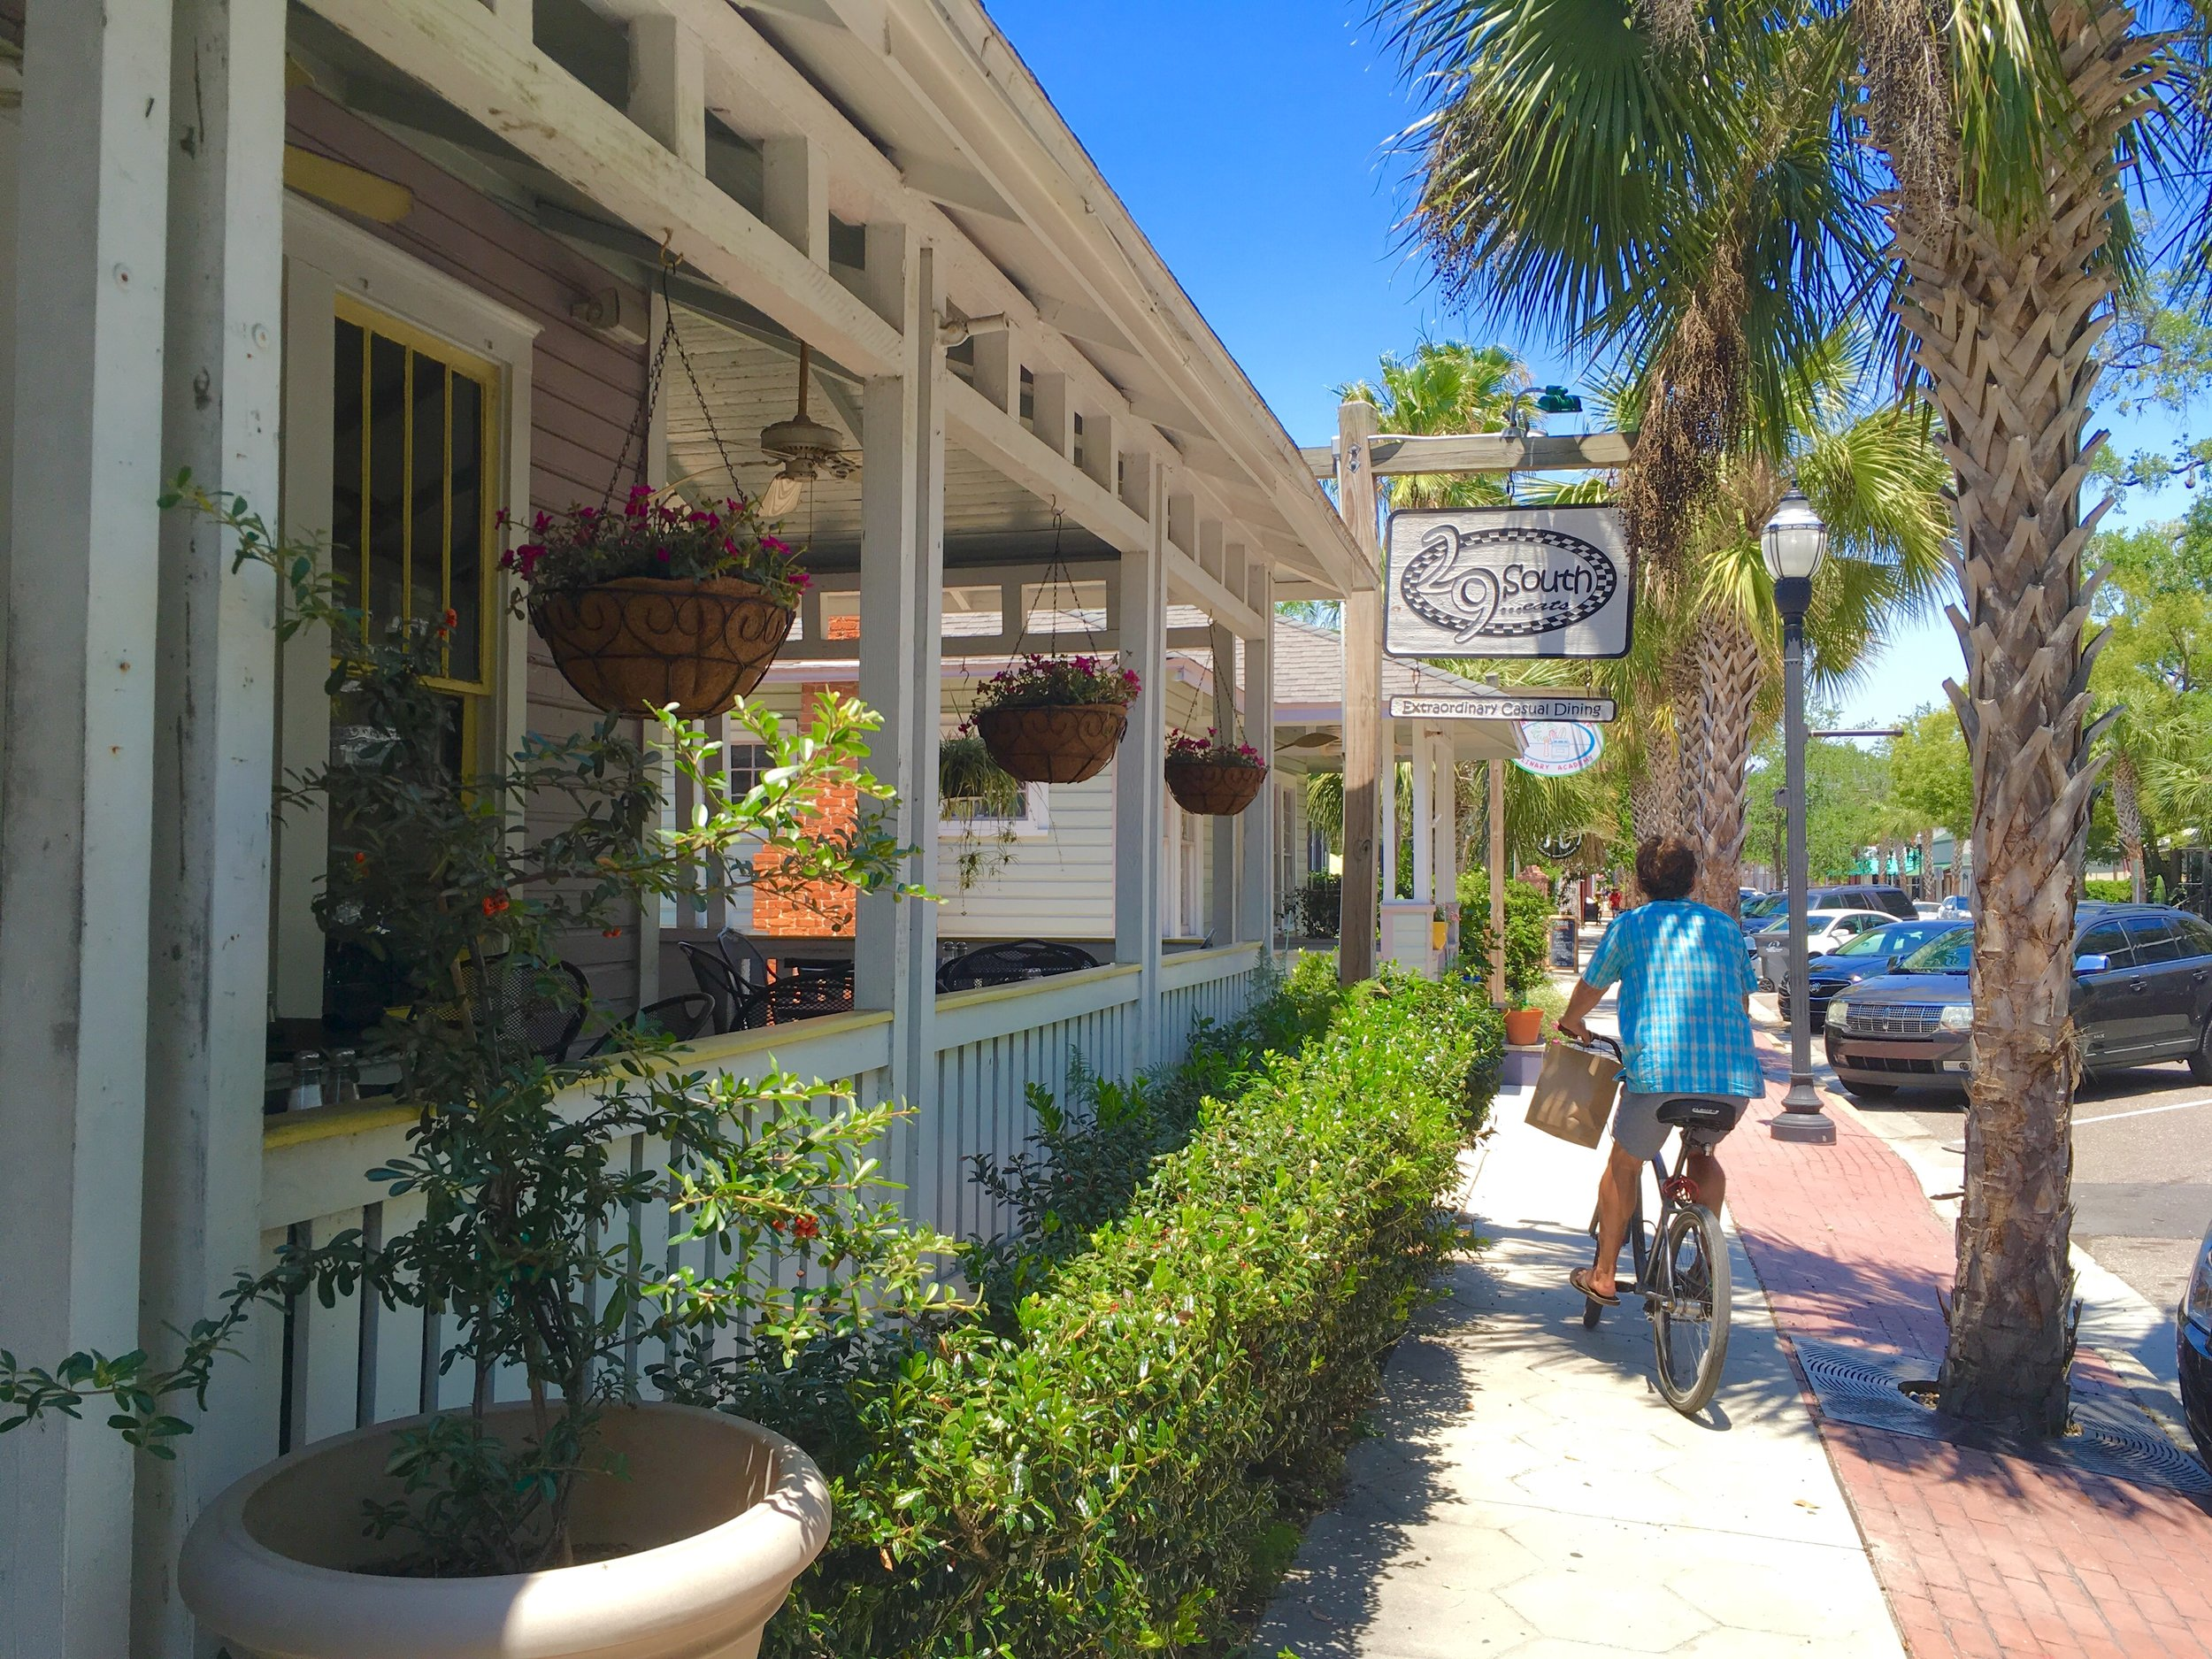 29 South is a located at 29 South 3rd. Street in historic Fernandina Beach, Florida.